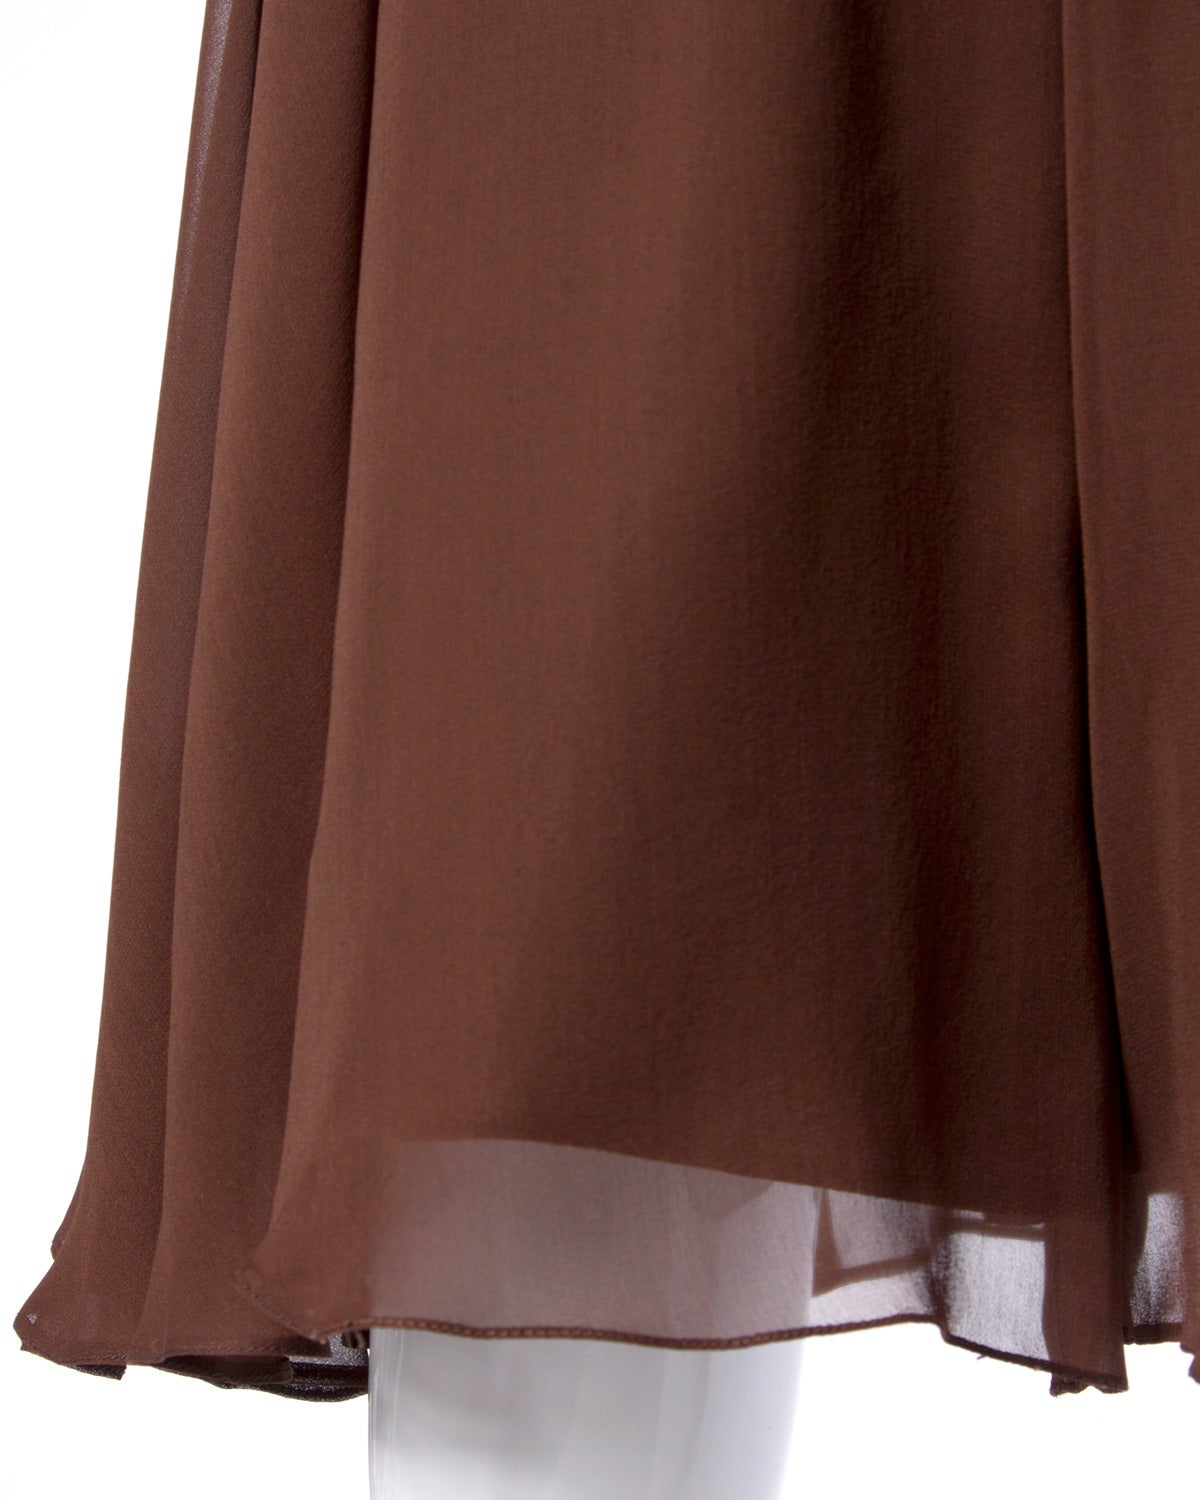 Carolina Herrera Vintage Brown Silk Chiffon Wide Leg Shorts/ Skirt 5